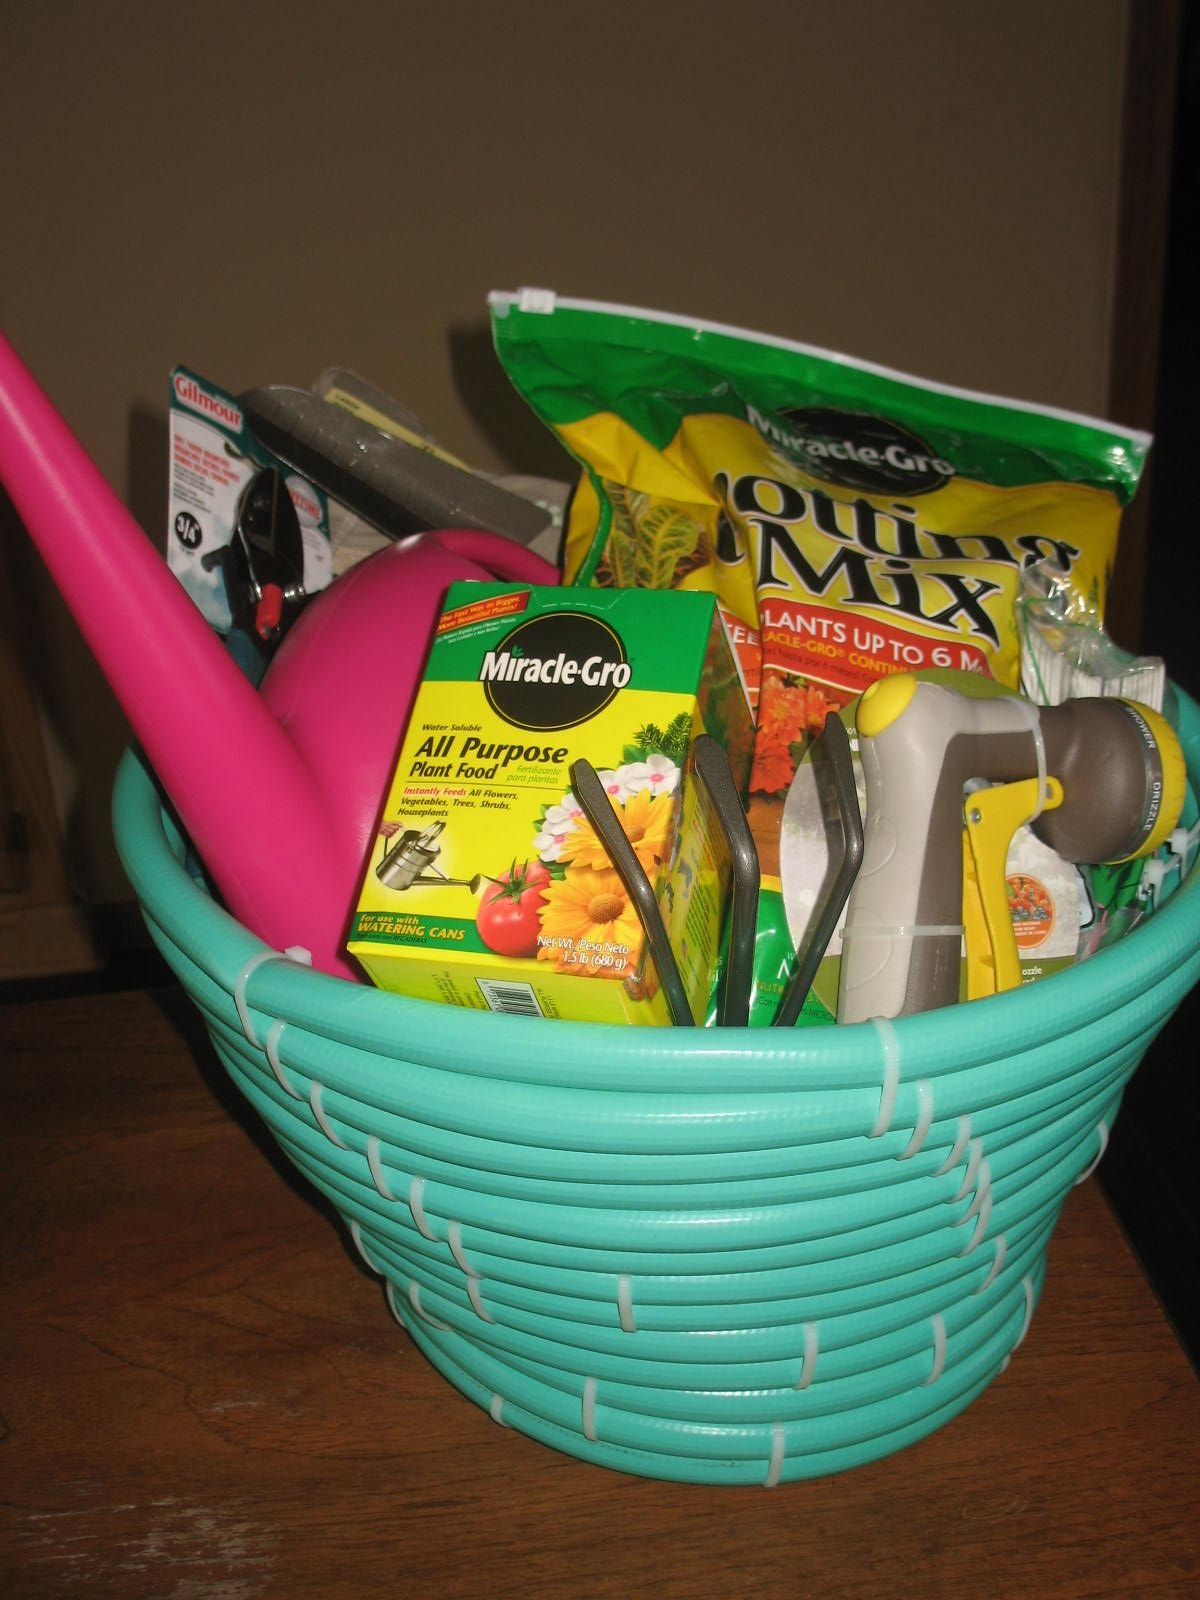 Homemade Hose Gardeners Gift Basket Perfect Gift For The Green